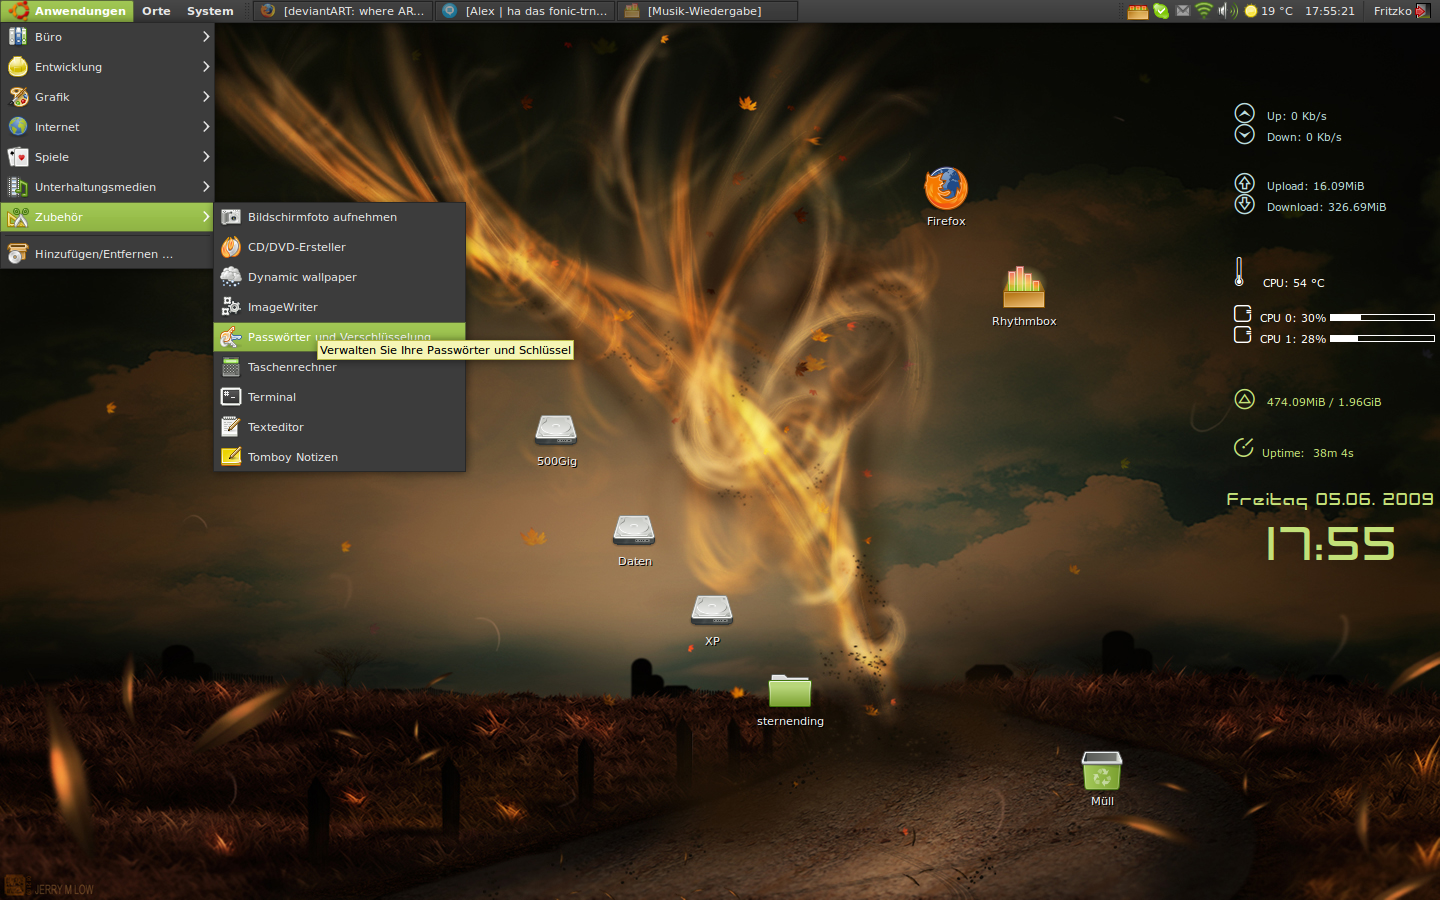 Linux Mint Theme for Ubuntu by Fritzko on DeviantArt